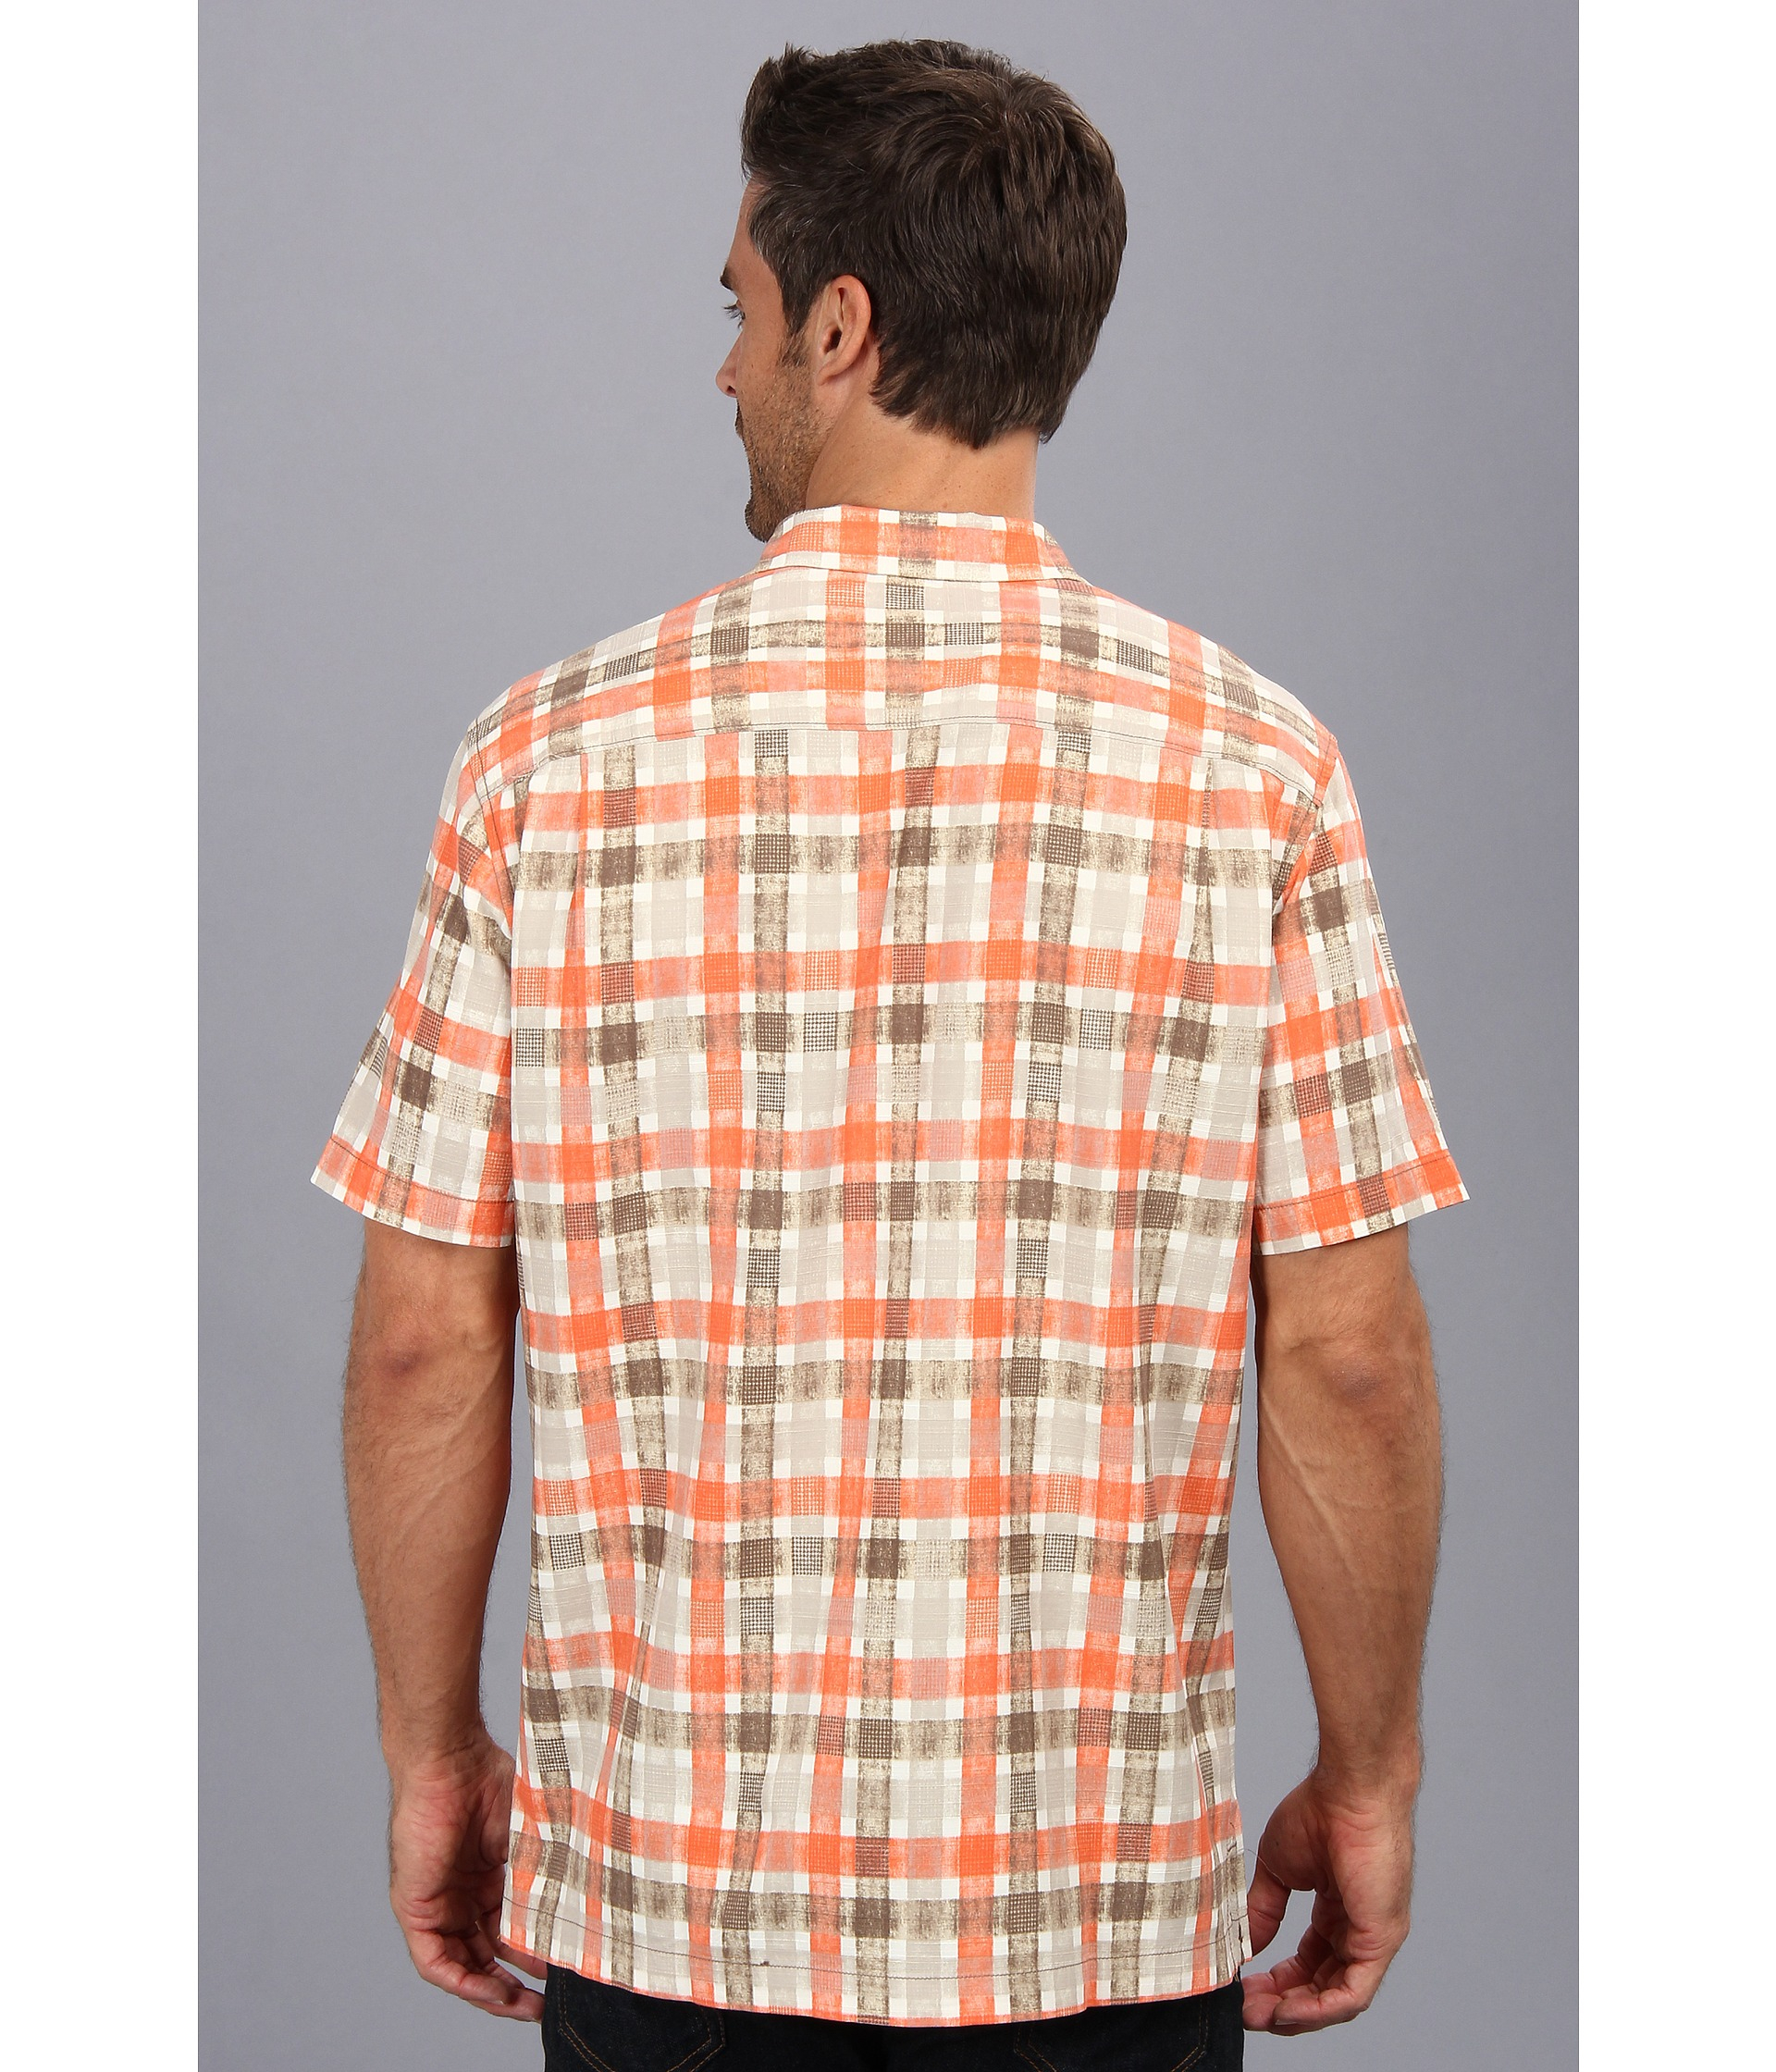 Tommy bahama island modern fit plaid impressions ss camp for Tommy bahama christmas shirt 2014